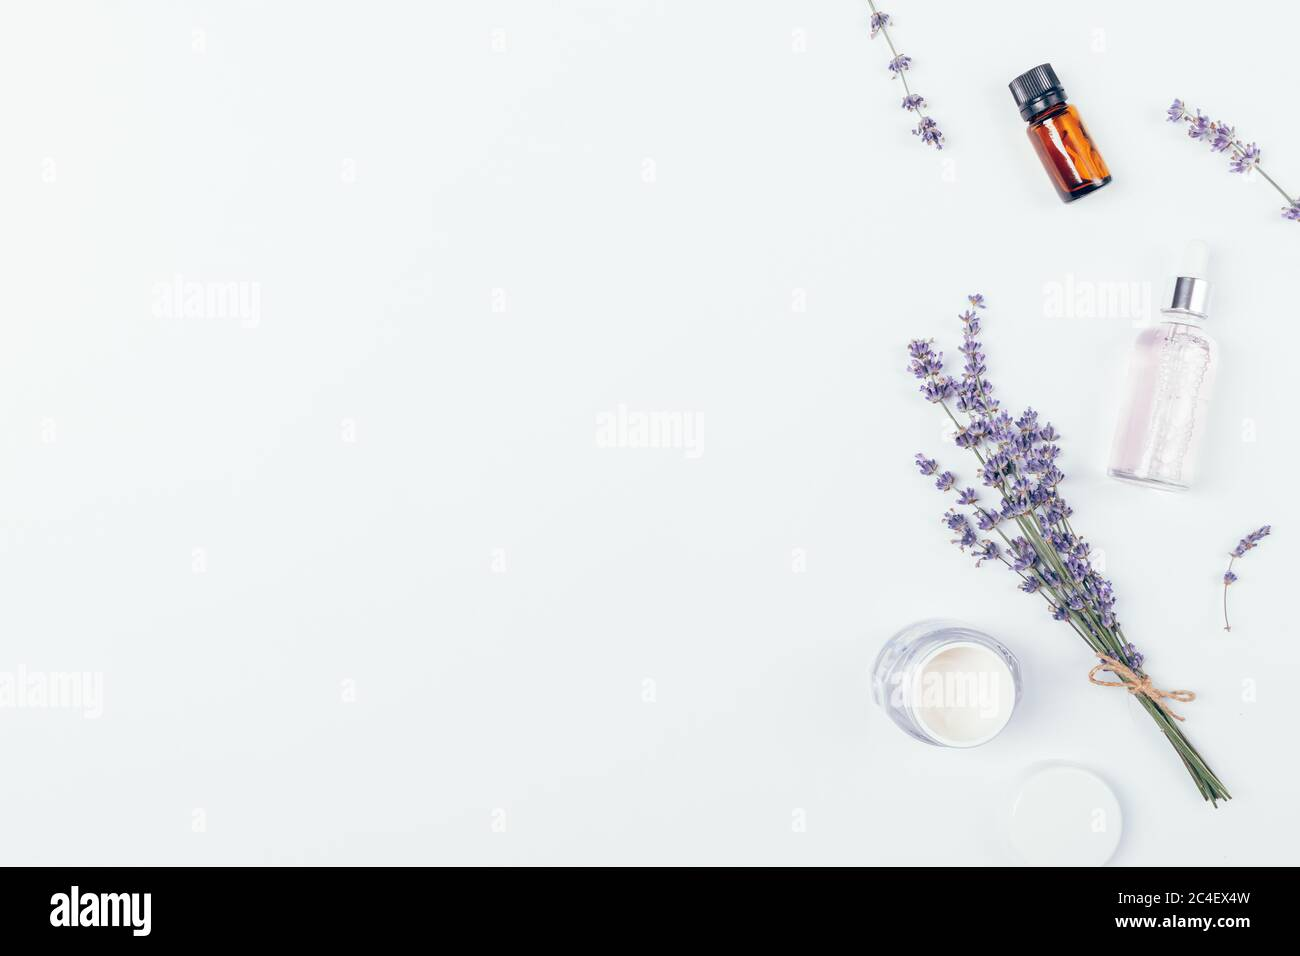 Flat Lay Composition With Natural Skin Care Cosmetics And Lavender Flowers On White Background With Free Space For Text Or Design Stock Photo Alamy